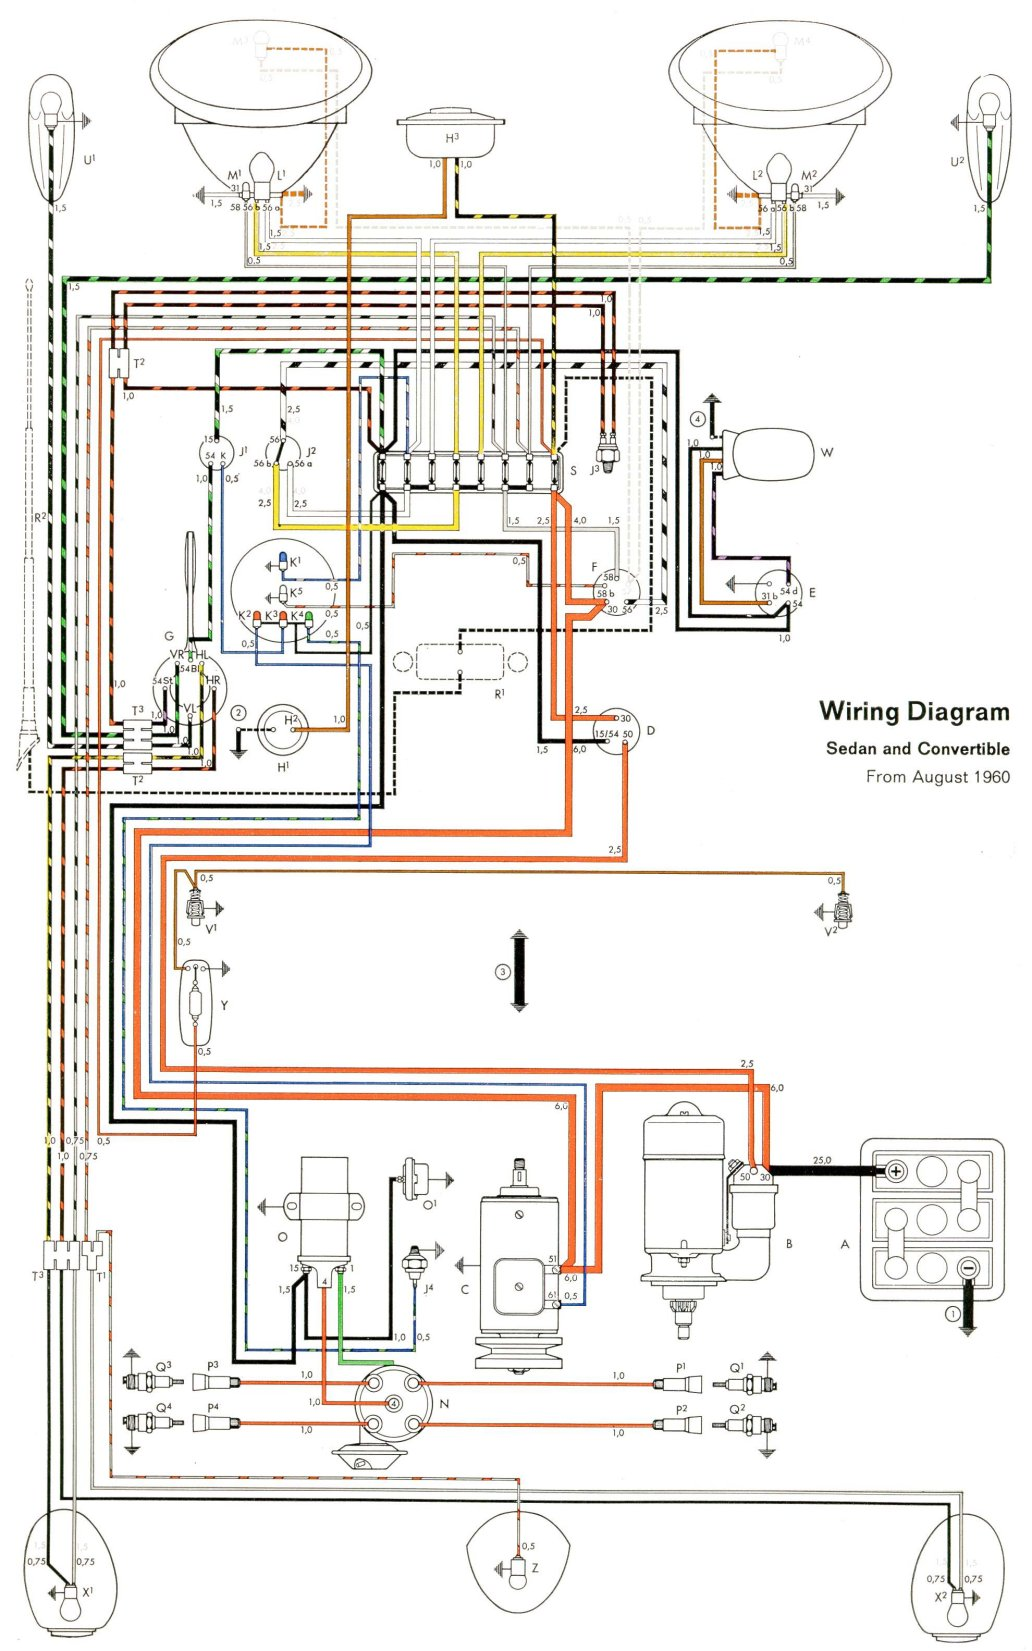 bug_61 thesamba com type 1 wiring diagrams installation wiring diagram for industry at n-0.co